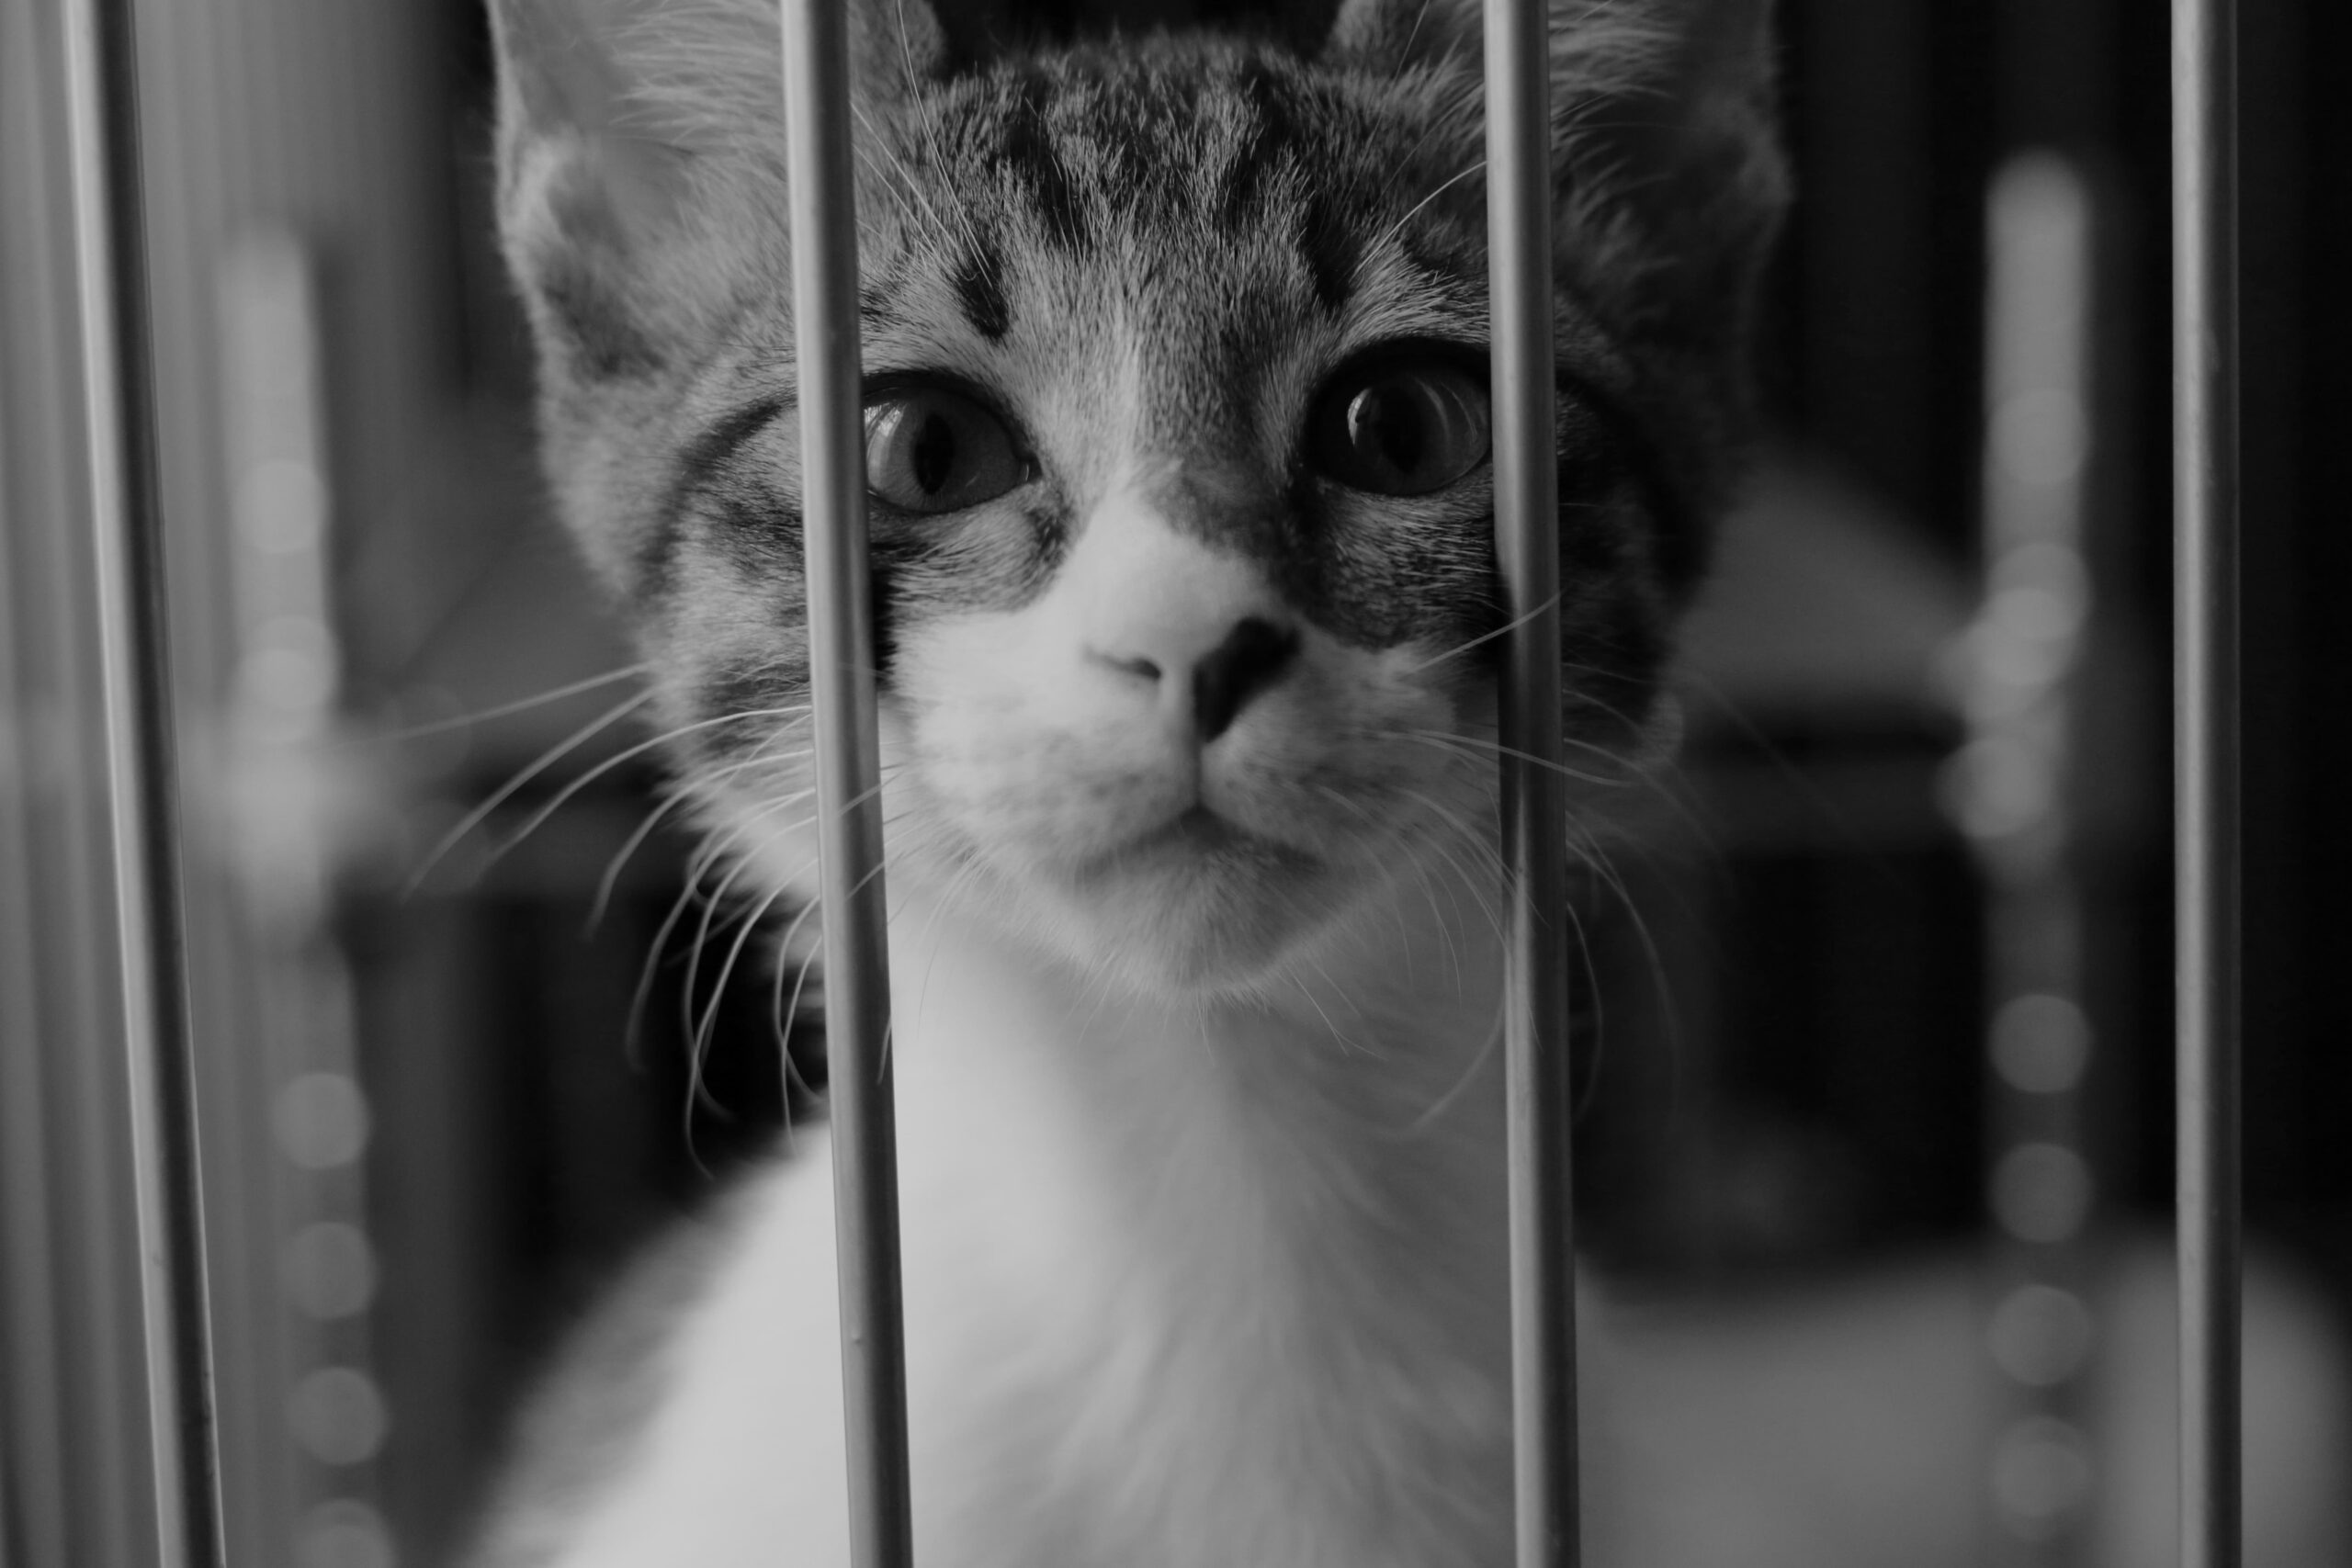 Black and white image of a cat staring outside its cage